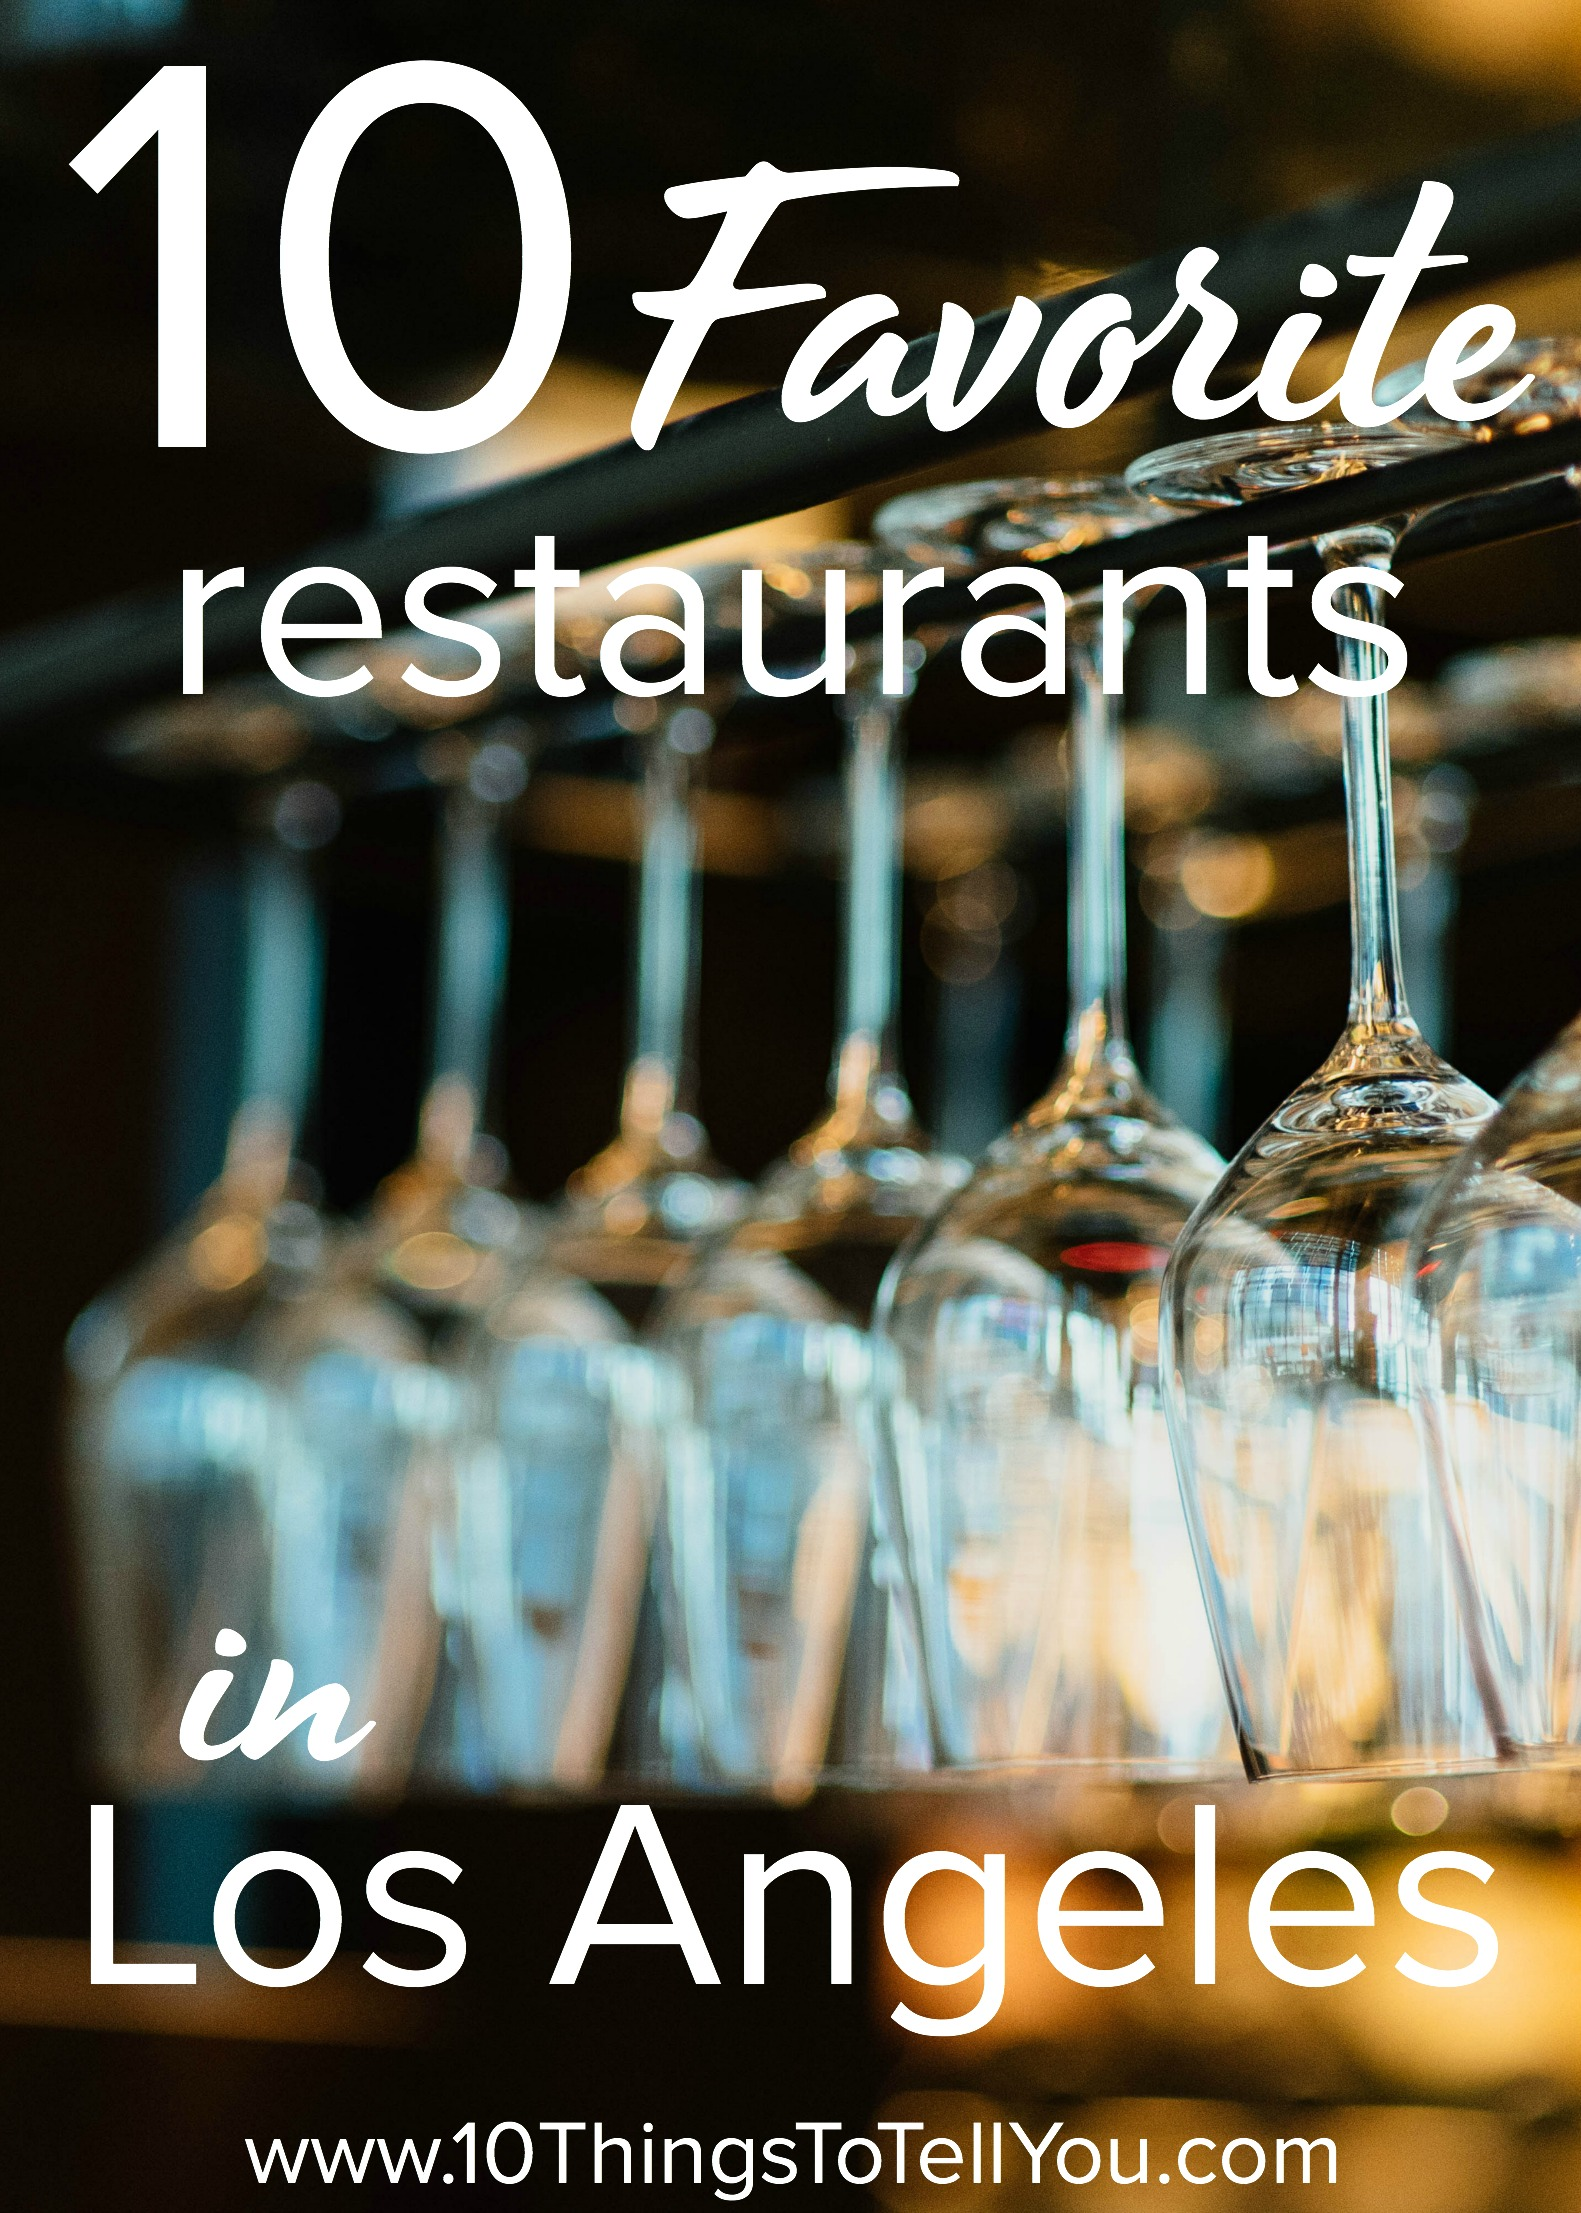 Favorite restaurants in Los Angeles